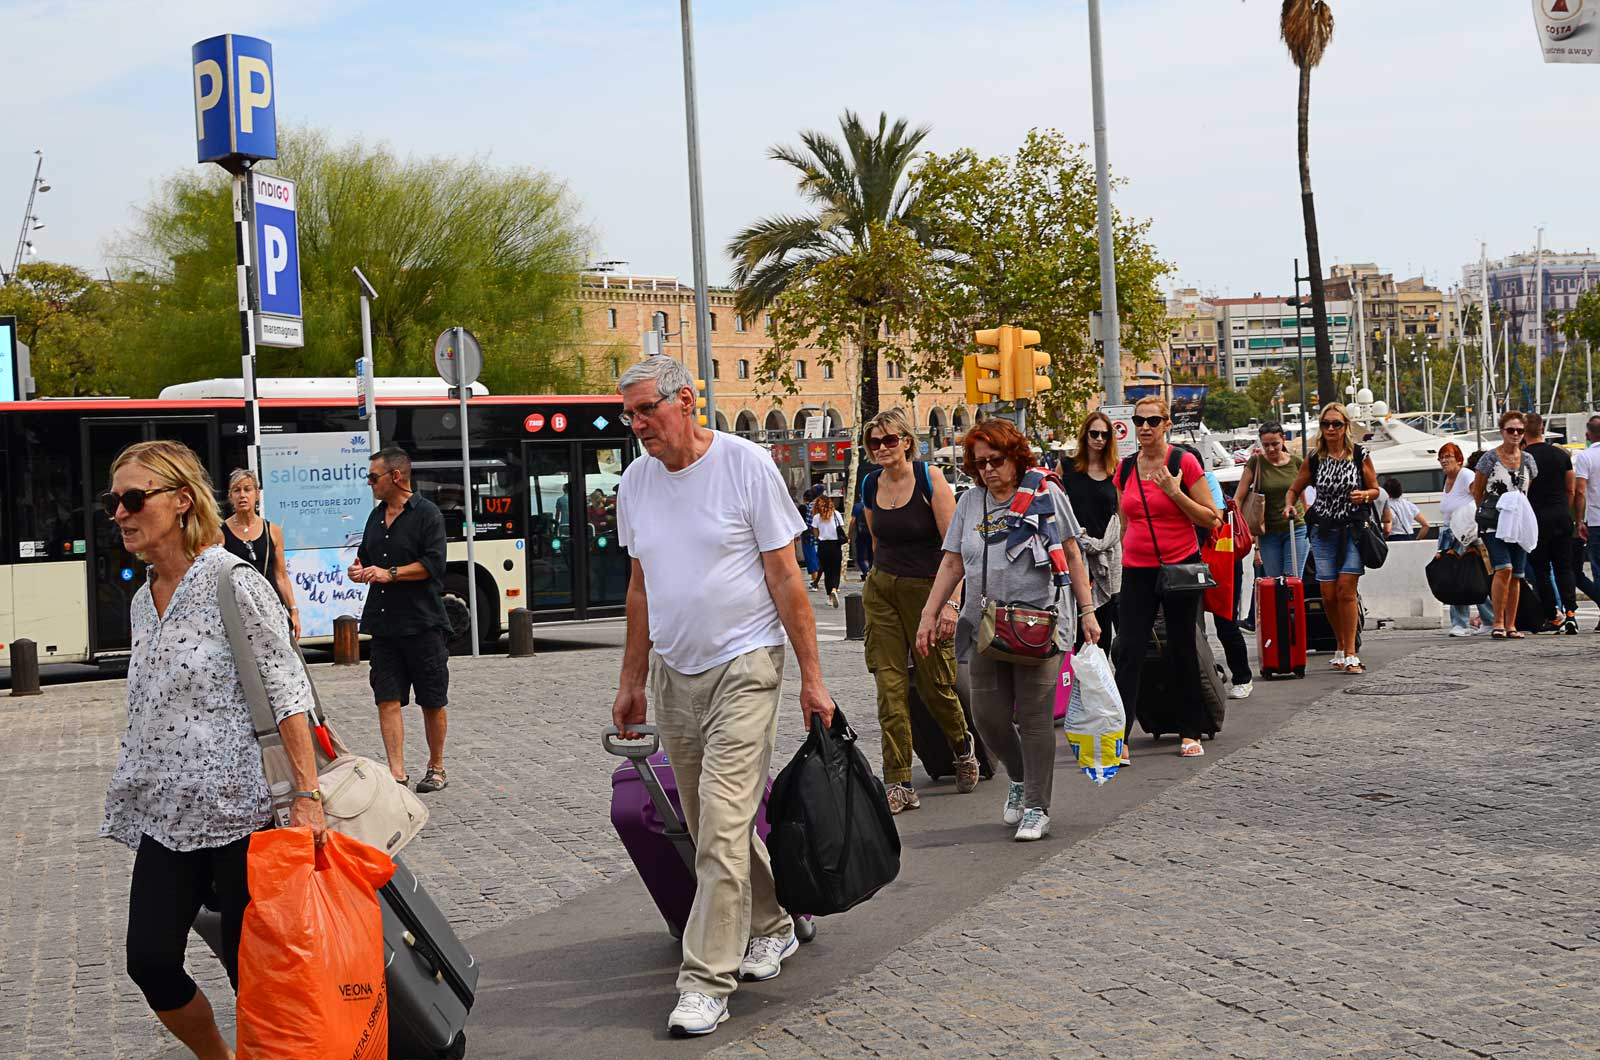 Mass Tourism in Barcelona